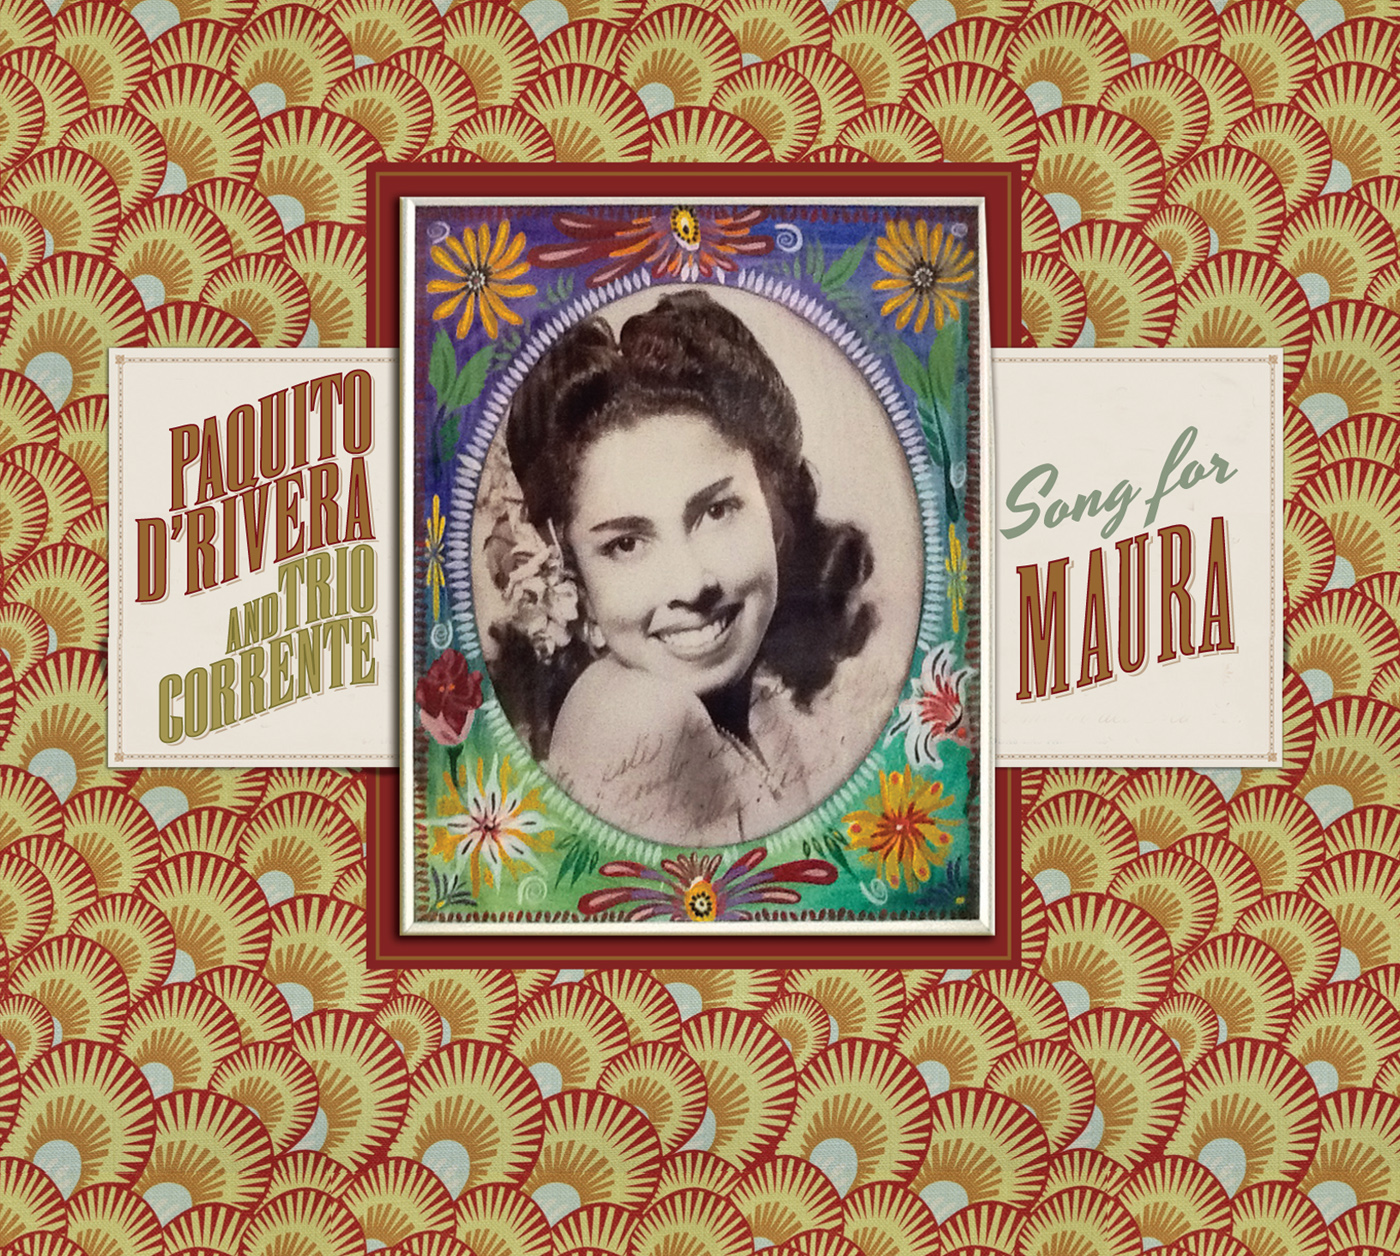 Song for Maura by Paquito D'Rivera cover